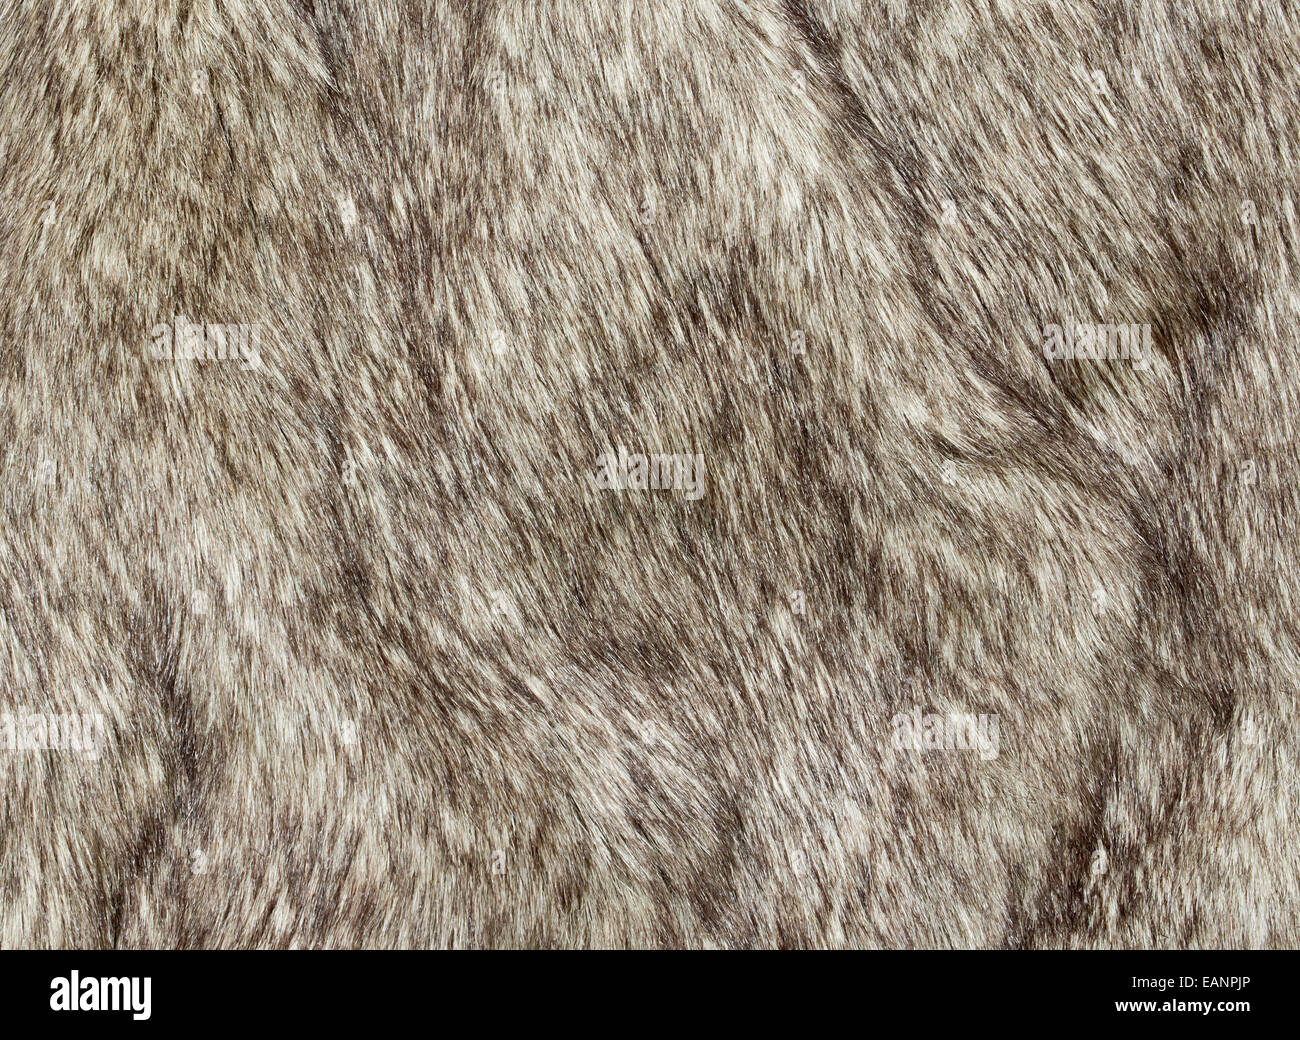 Faux fur fabric for the fashion industry used to artificially recreate animal pelts including reindeer and coyote. - Stock Image